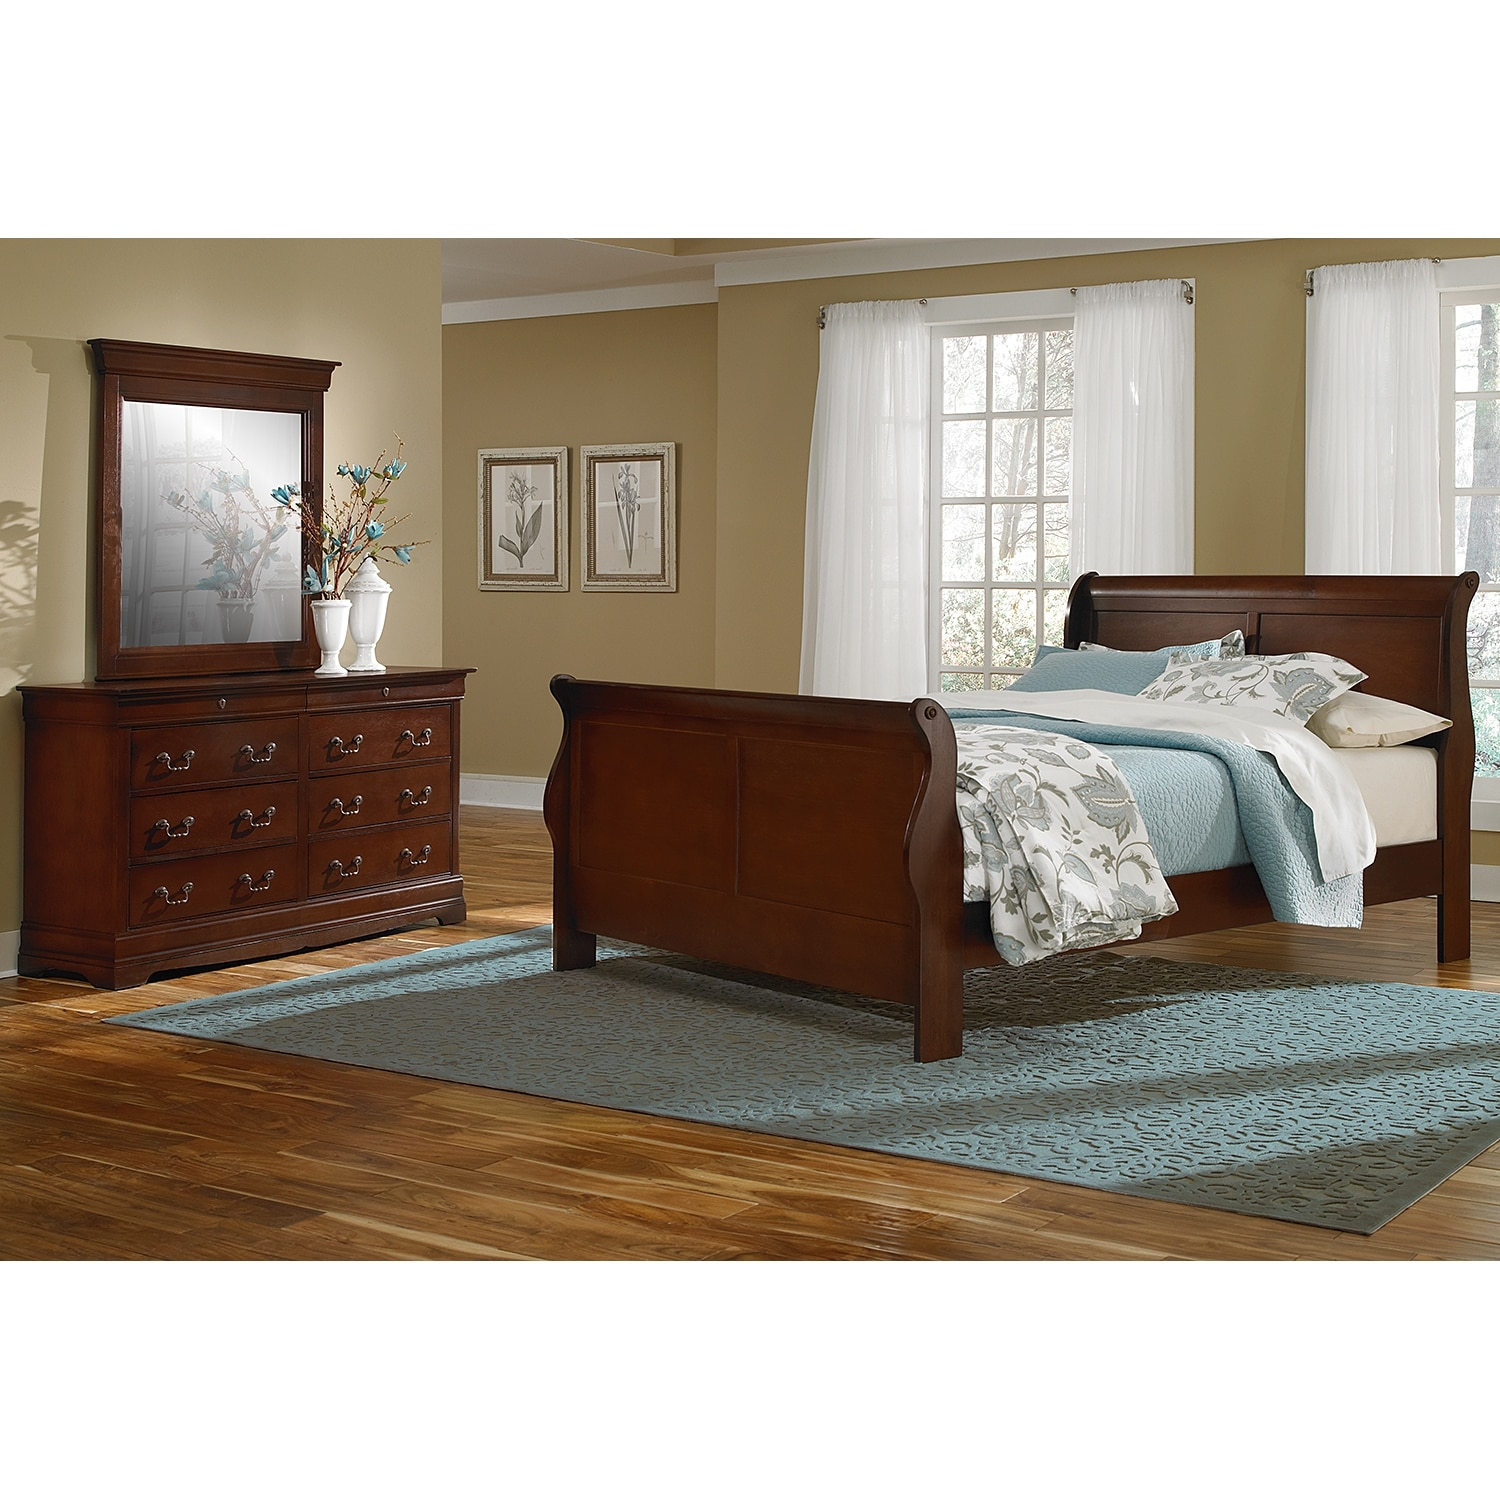 neo classic youth 5 piece twin bedroom set cherry value city furniture. Black Bedroom Furniture Sets. Home Design Ideas